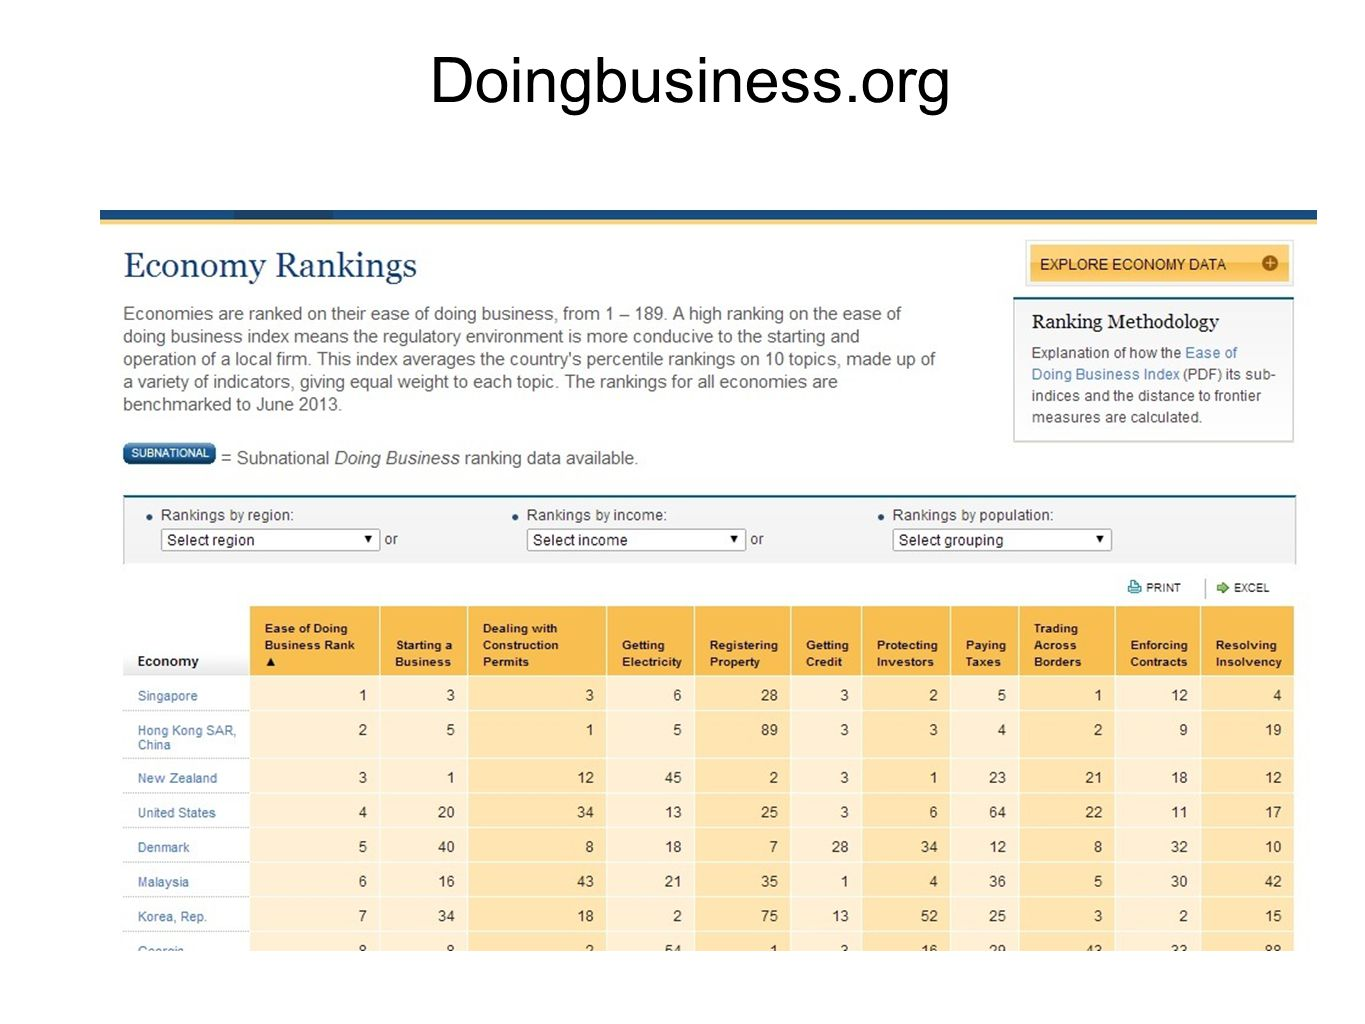 Doingbusiness.org